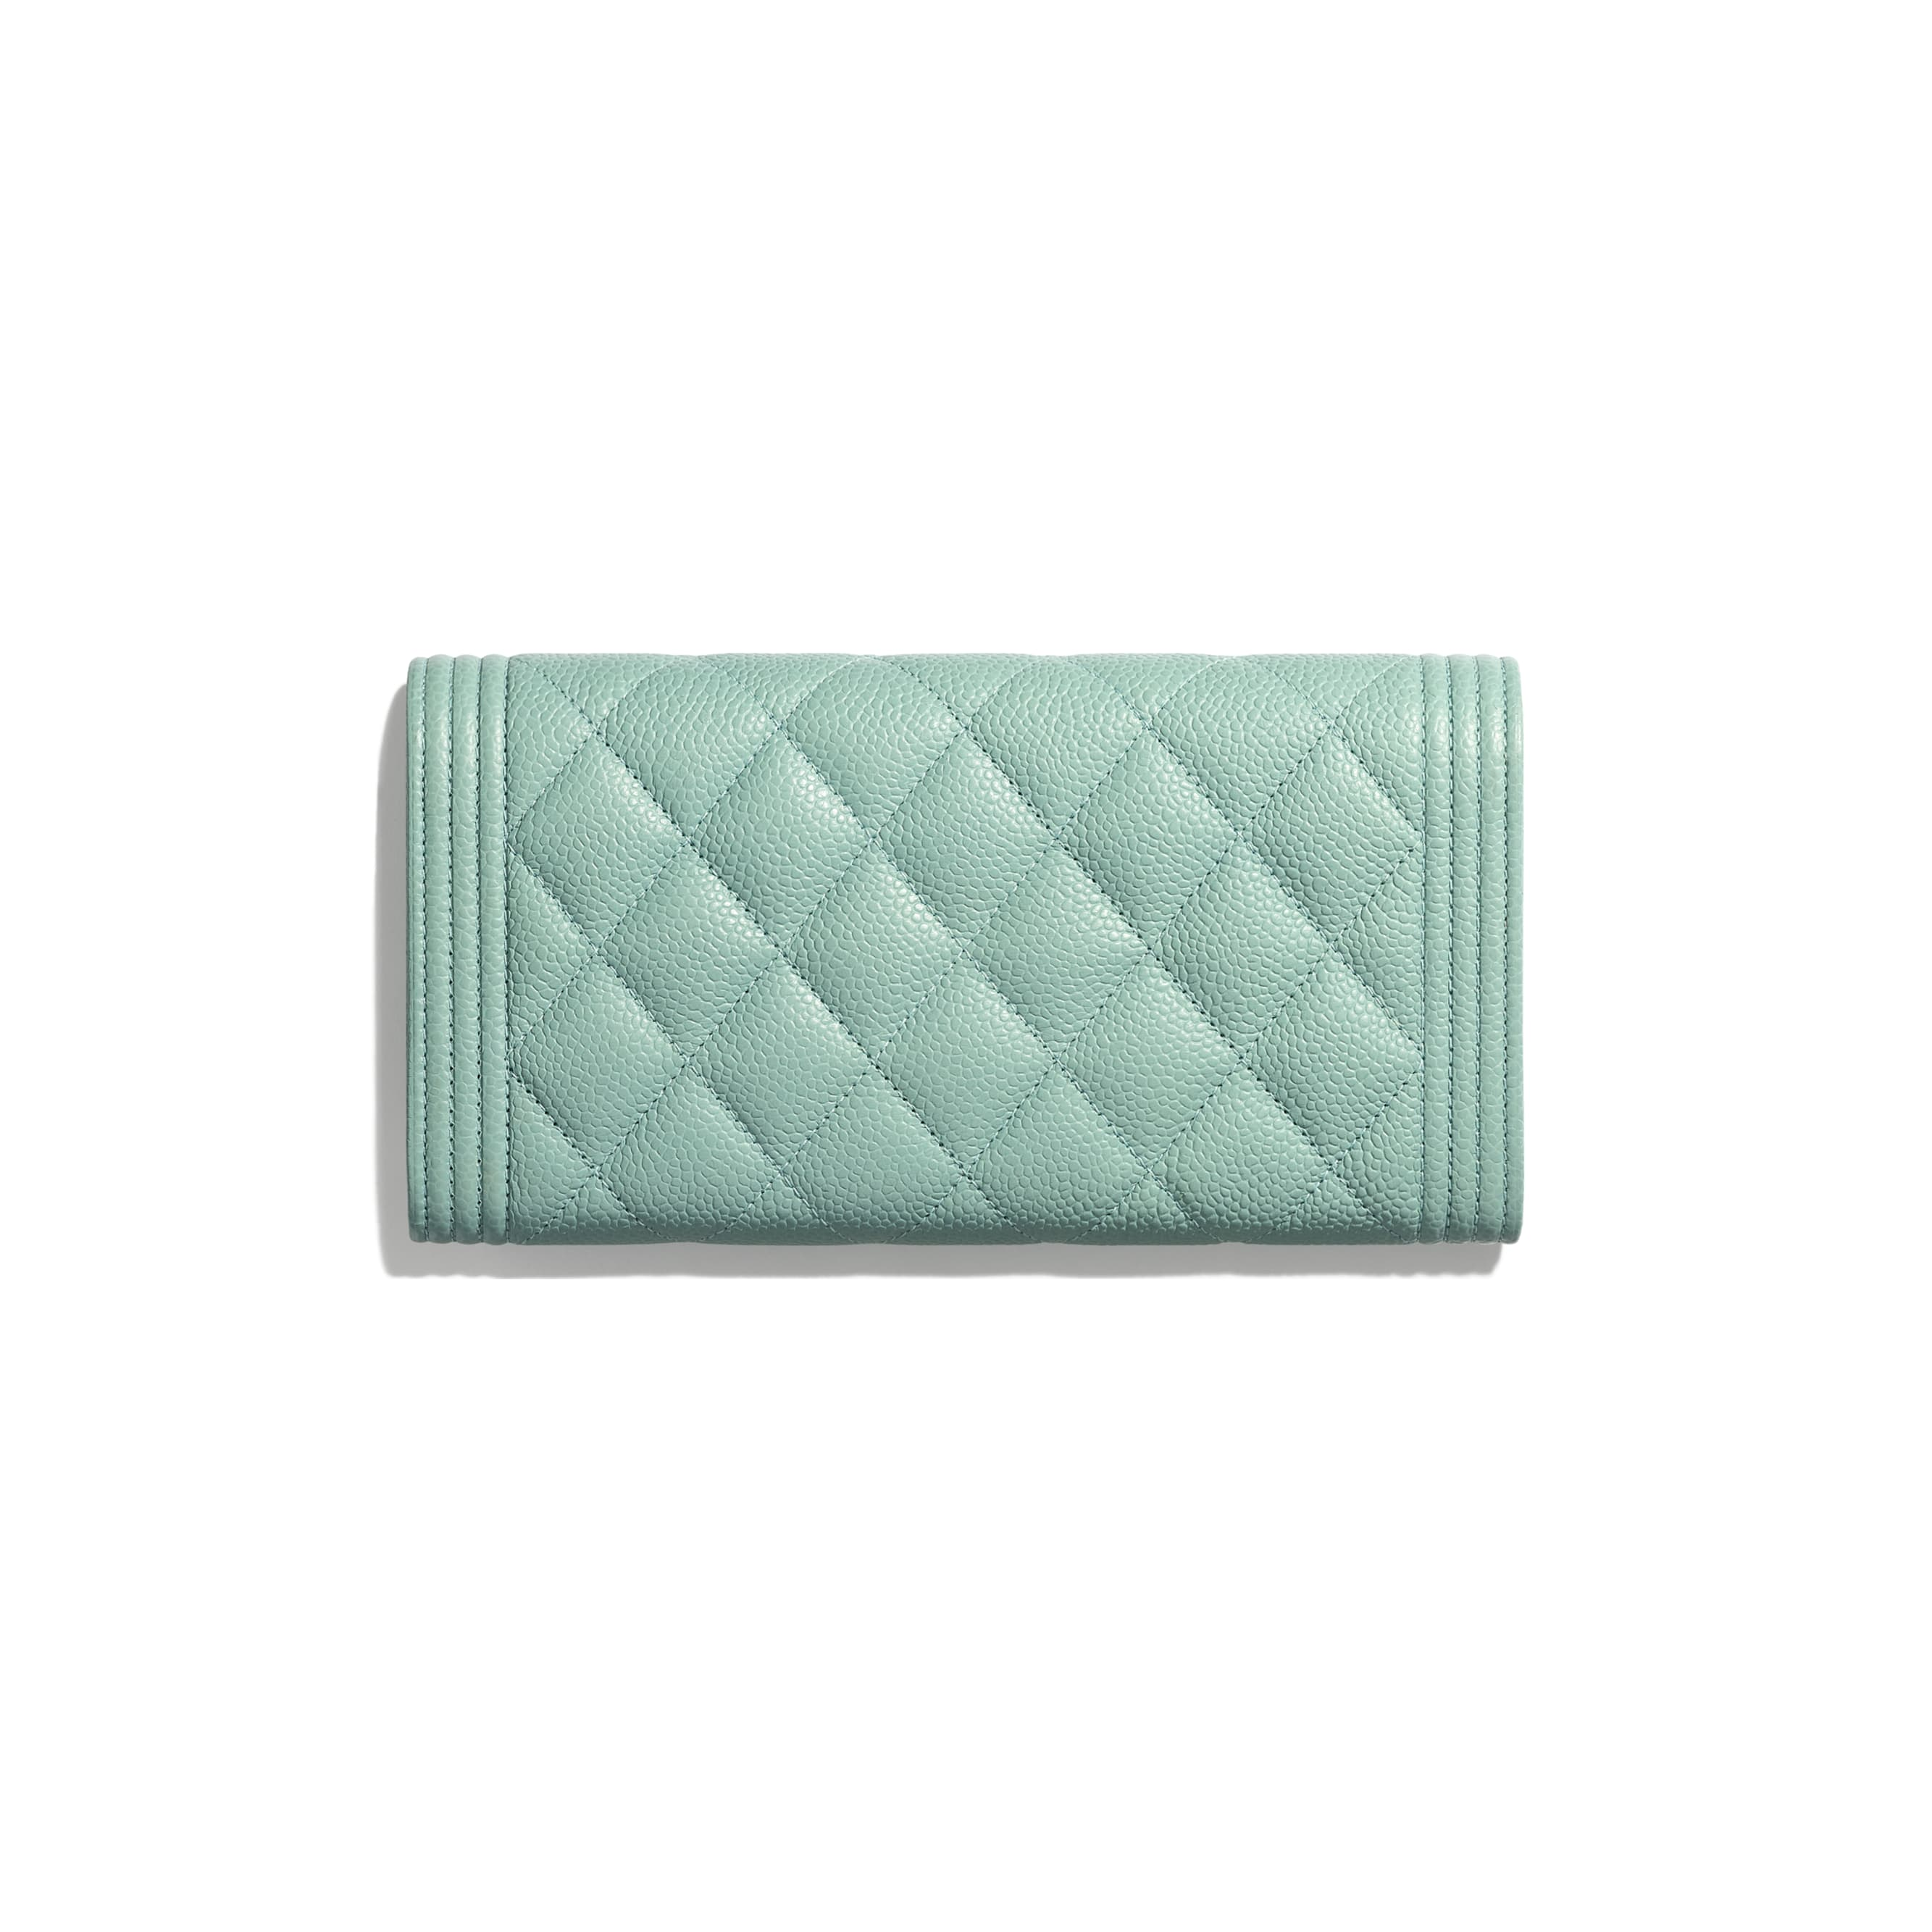 BOY CHANEL Long Flap Wallet - Blue - Grained Calfskin & Gold-Tone Metal - Alternative view - see standard sized version